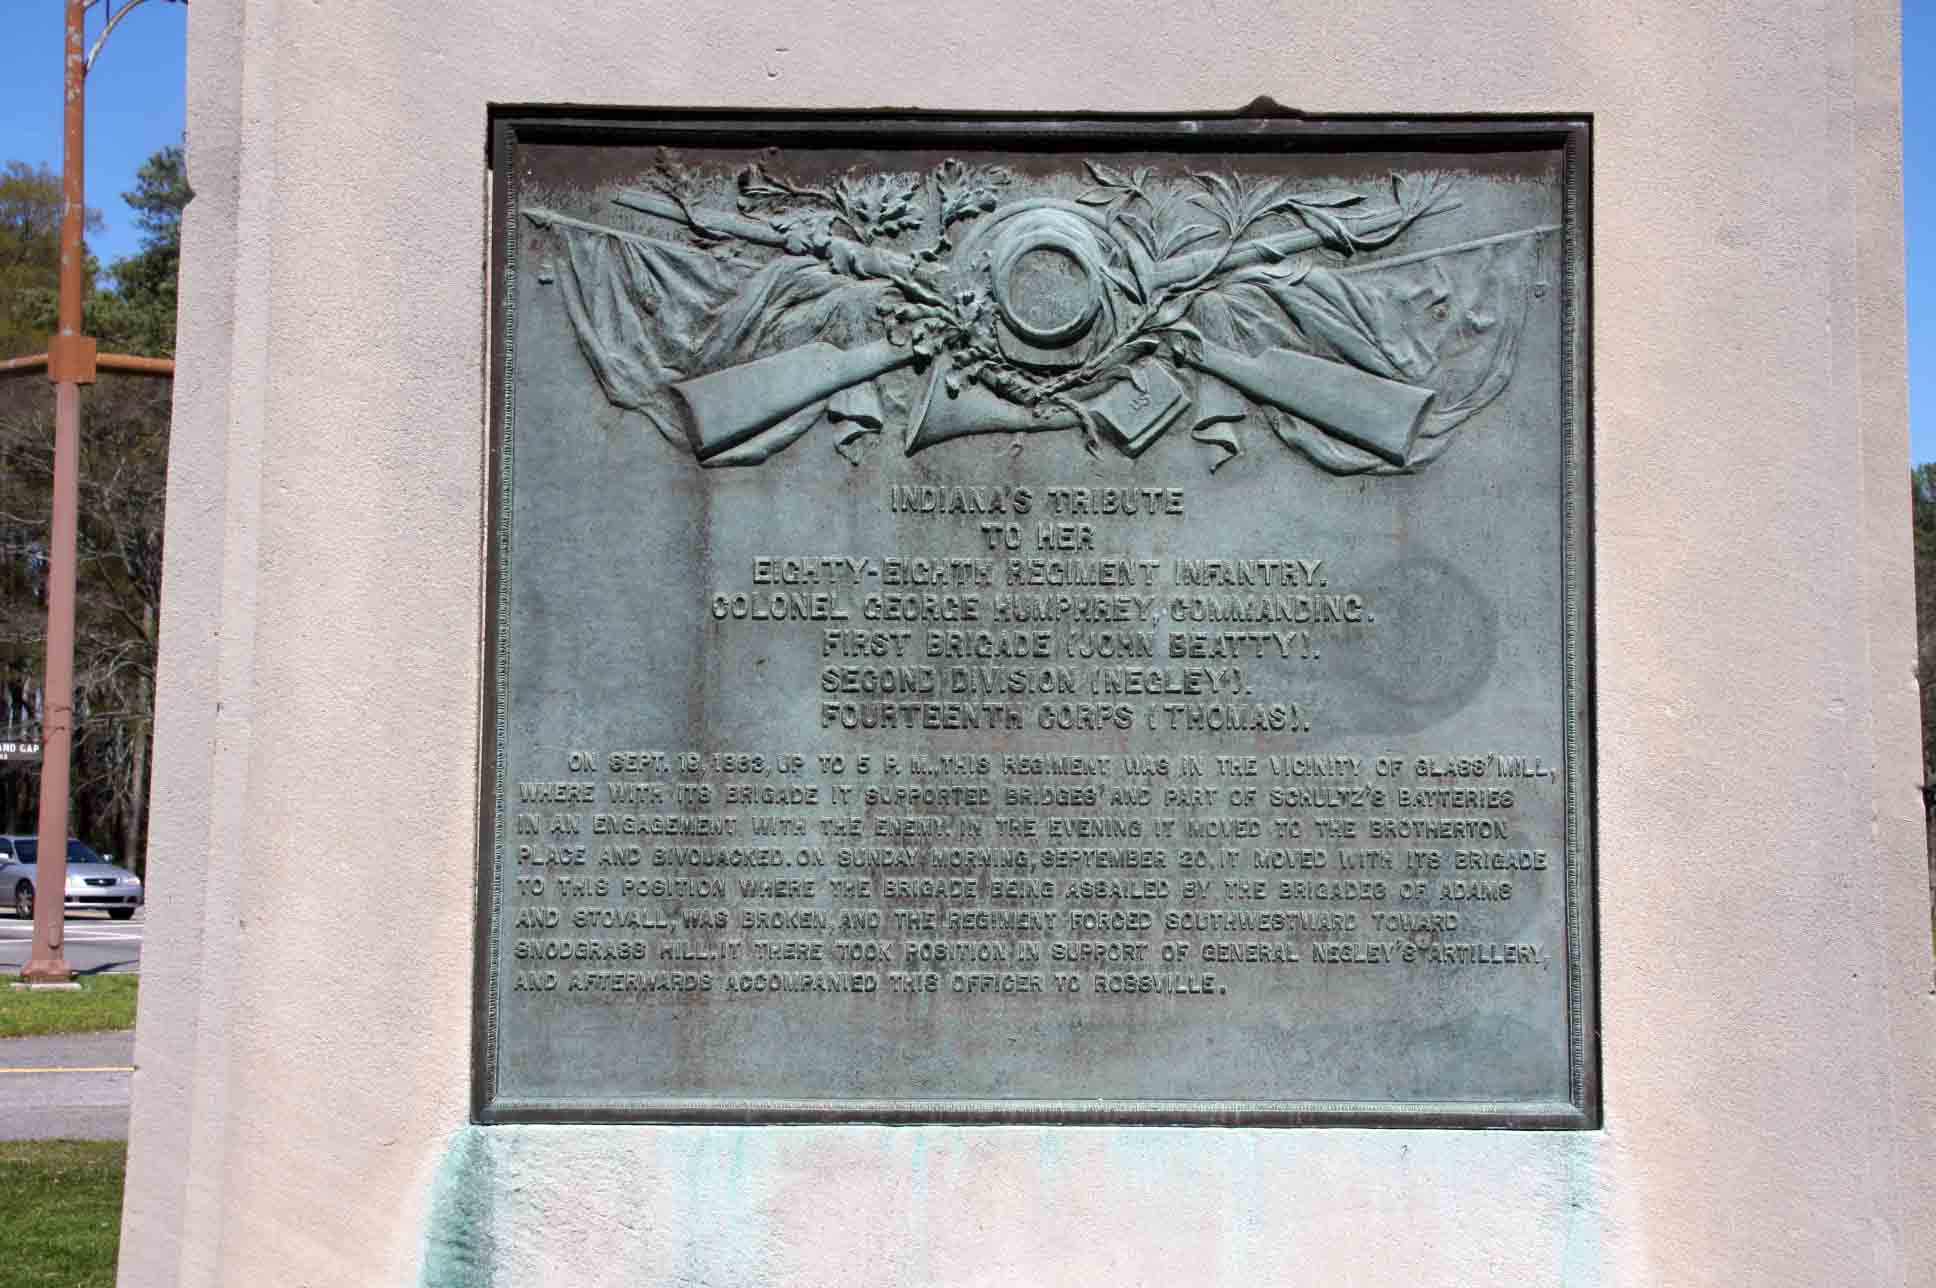 88th Indiana Infantry Regiment Monument, click photo to enlarge.